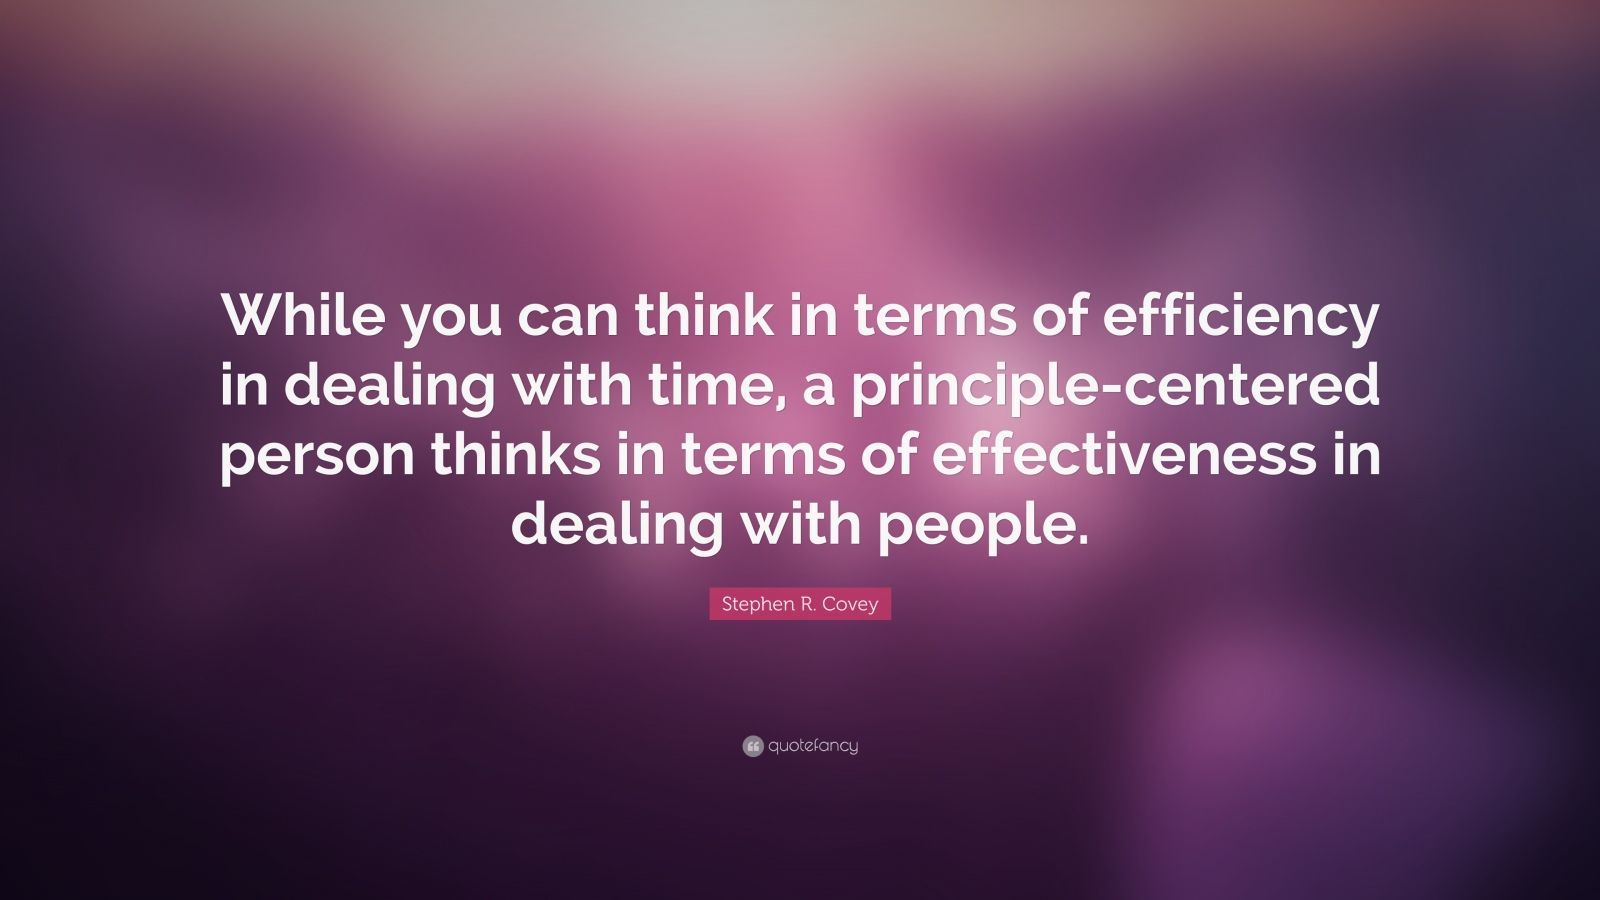 """Stephen R. Covey Quote: """"While you can think in terms of efficiency in dealing with time, a principle-centered person thinks in terms of effectiveness in dealing with people."""""""